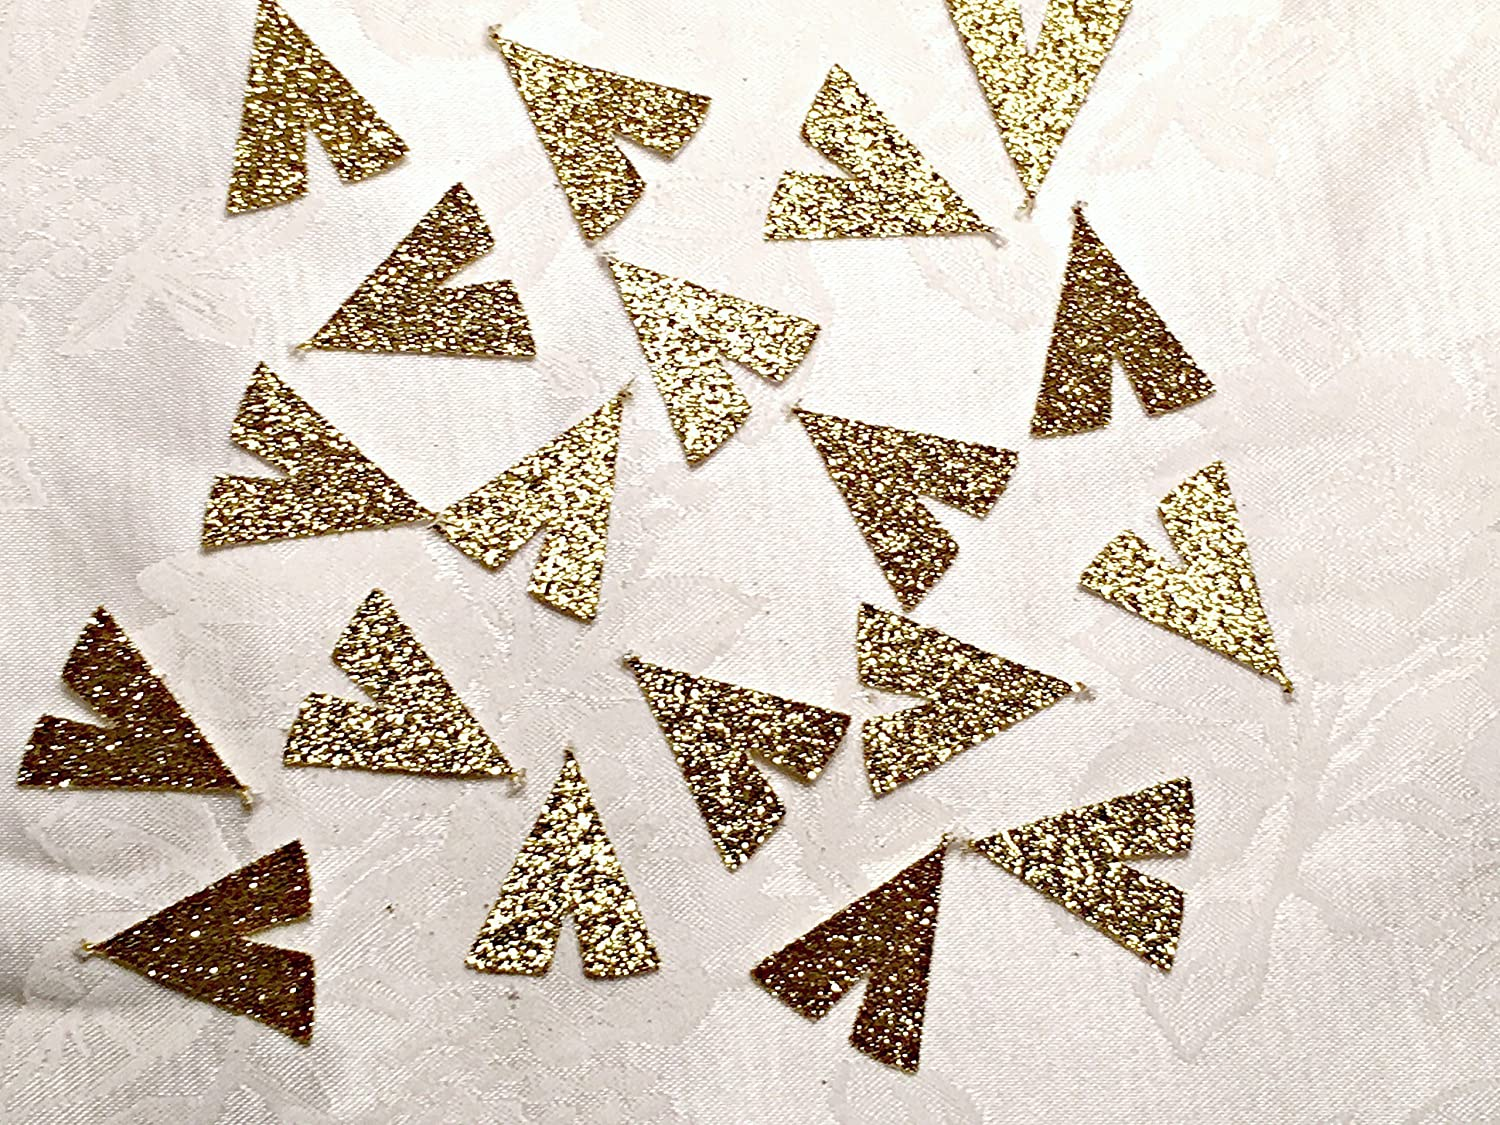 100 Glitter Tribal Party Tee Pee Shaped Confetti Table Decor, MANY COLORS AVAILABLE